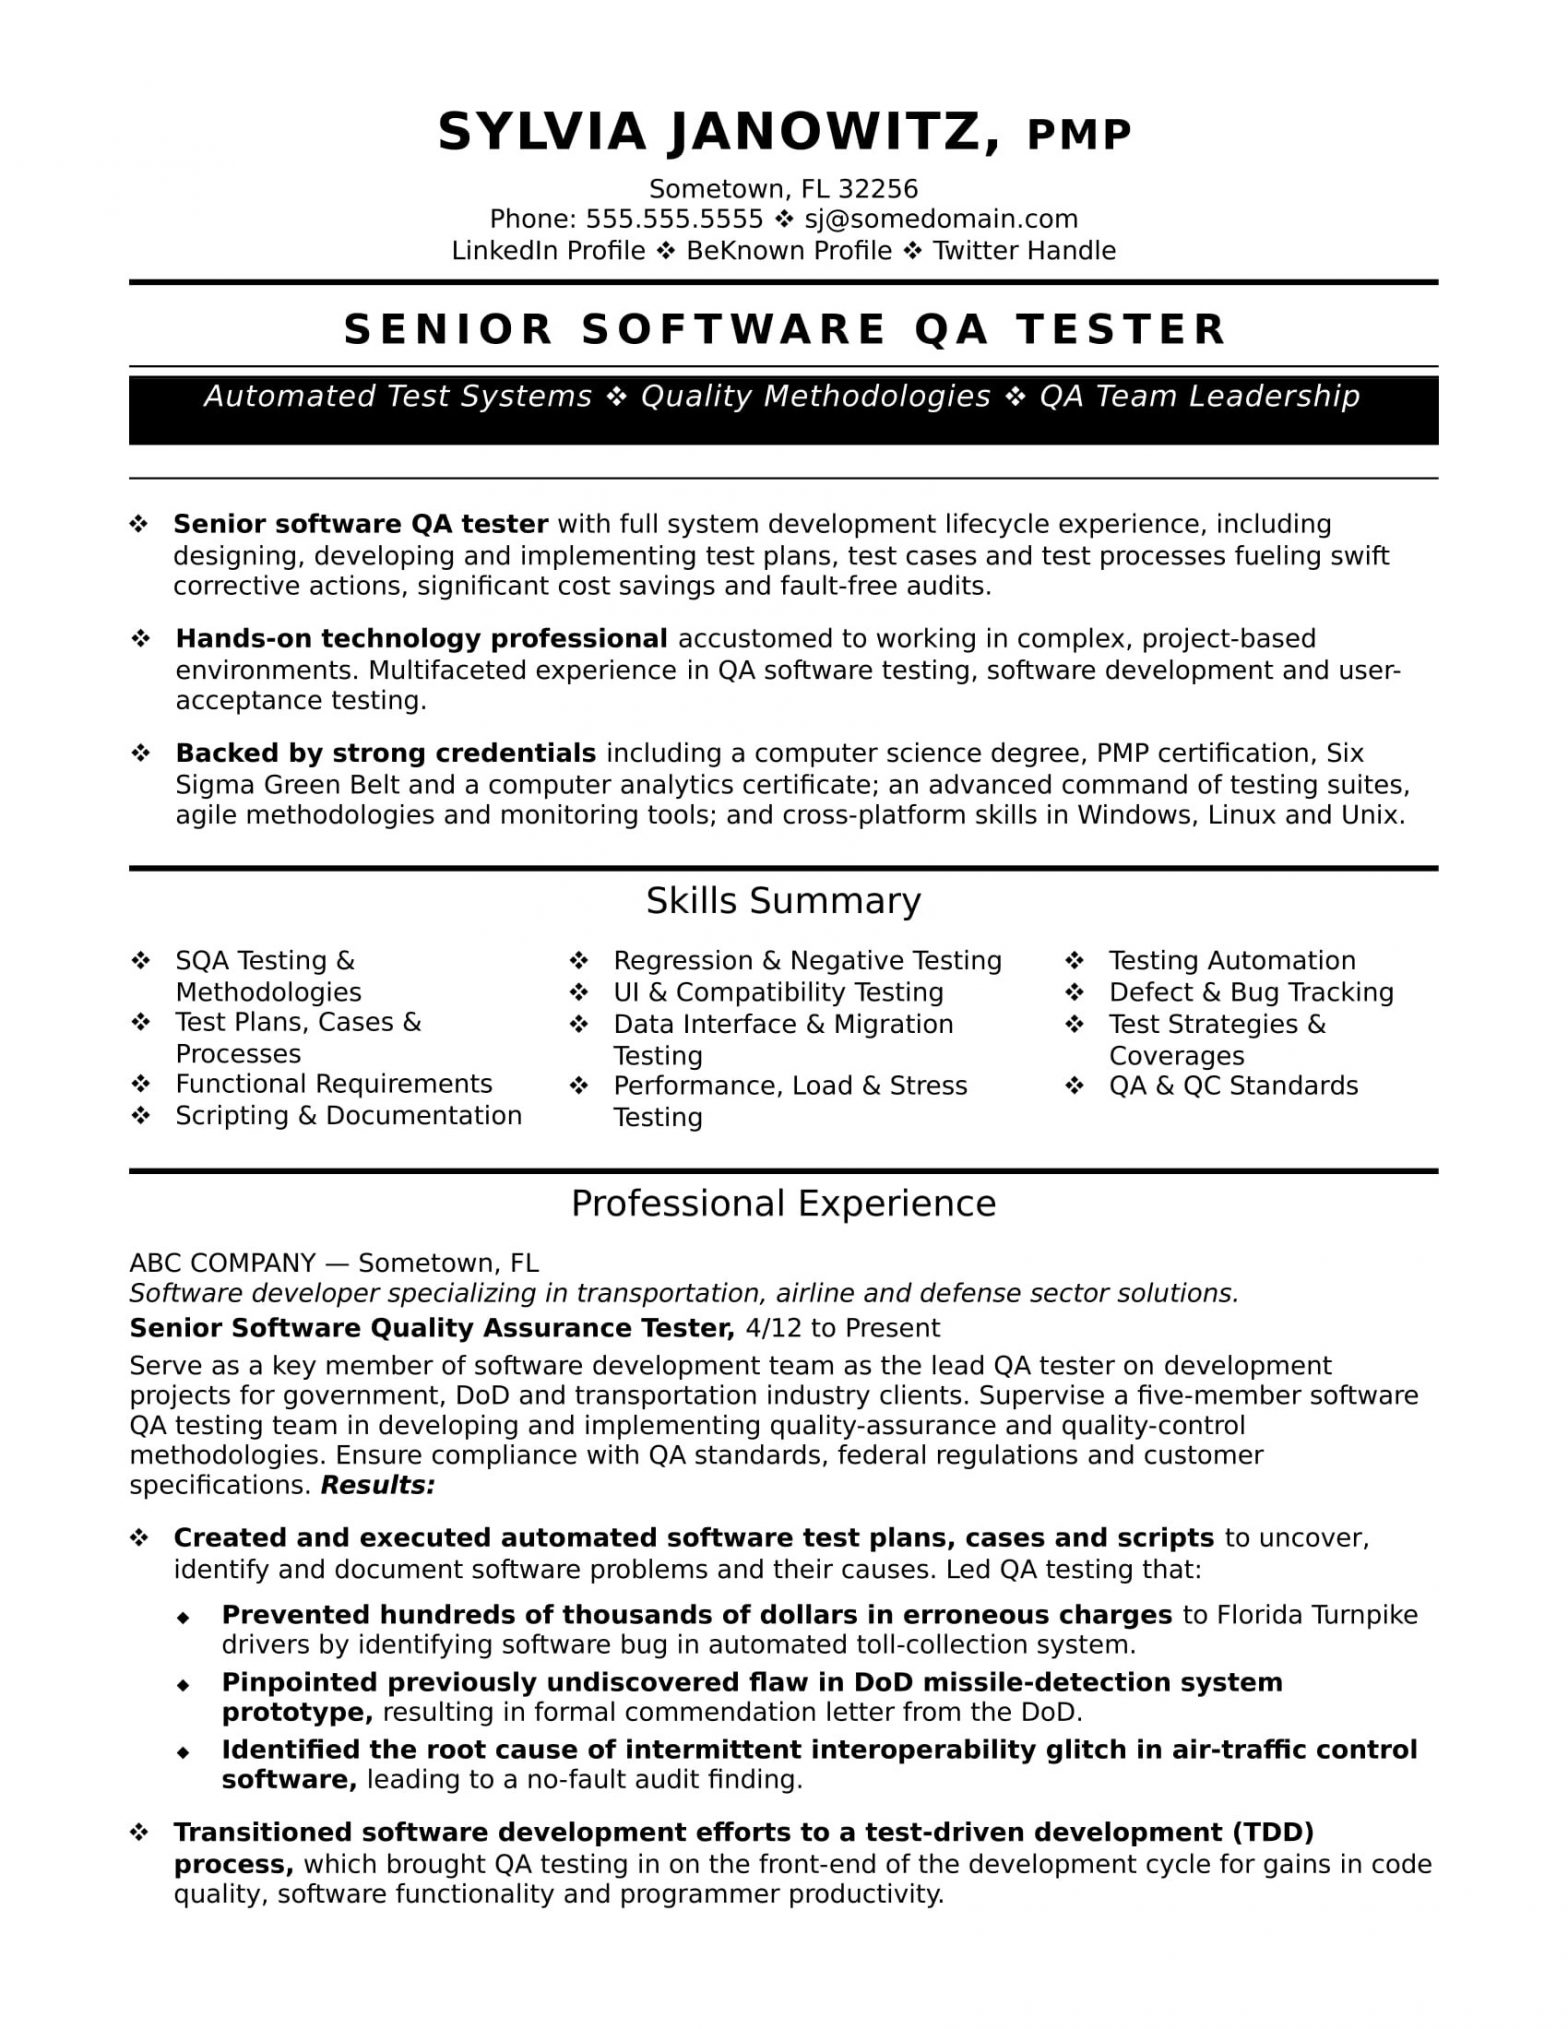 Sample Resume with Agile Experience for Testing Experienced Qa software Tester Resume Sample Monster.com